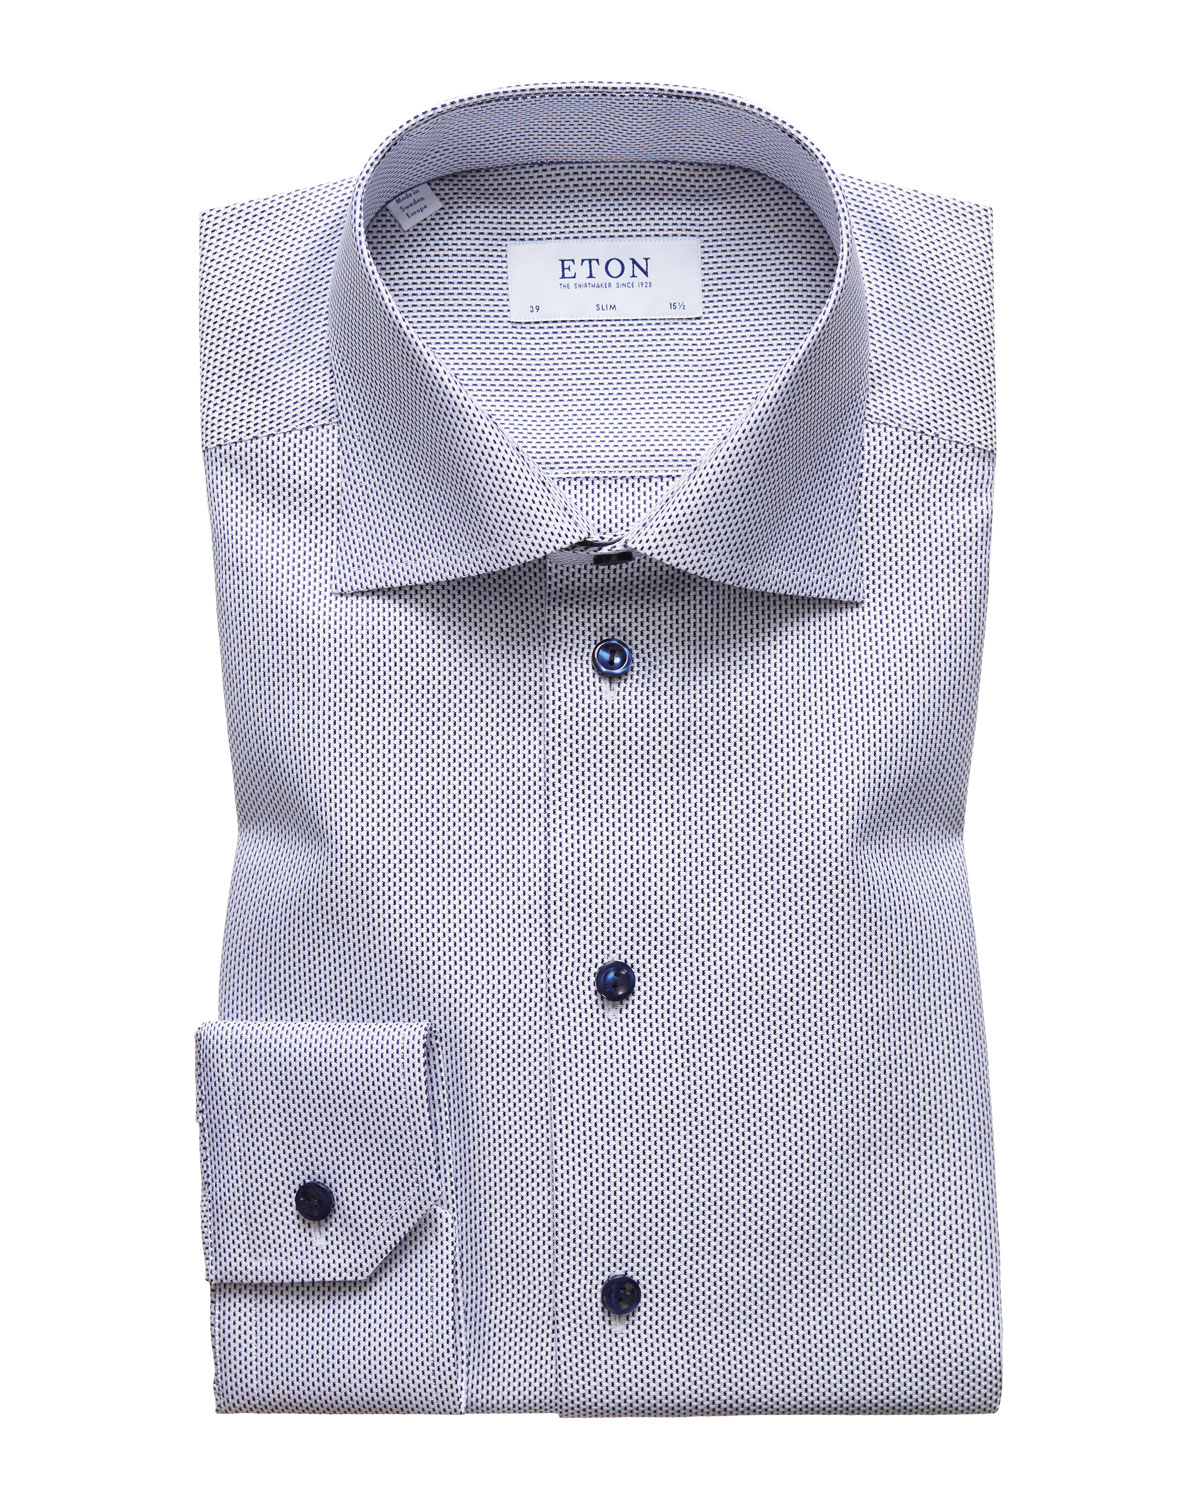 ETON Men'S Slim Fit Textured Solid Dress Shirt in Navy